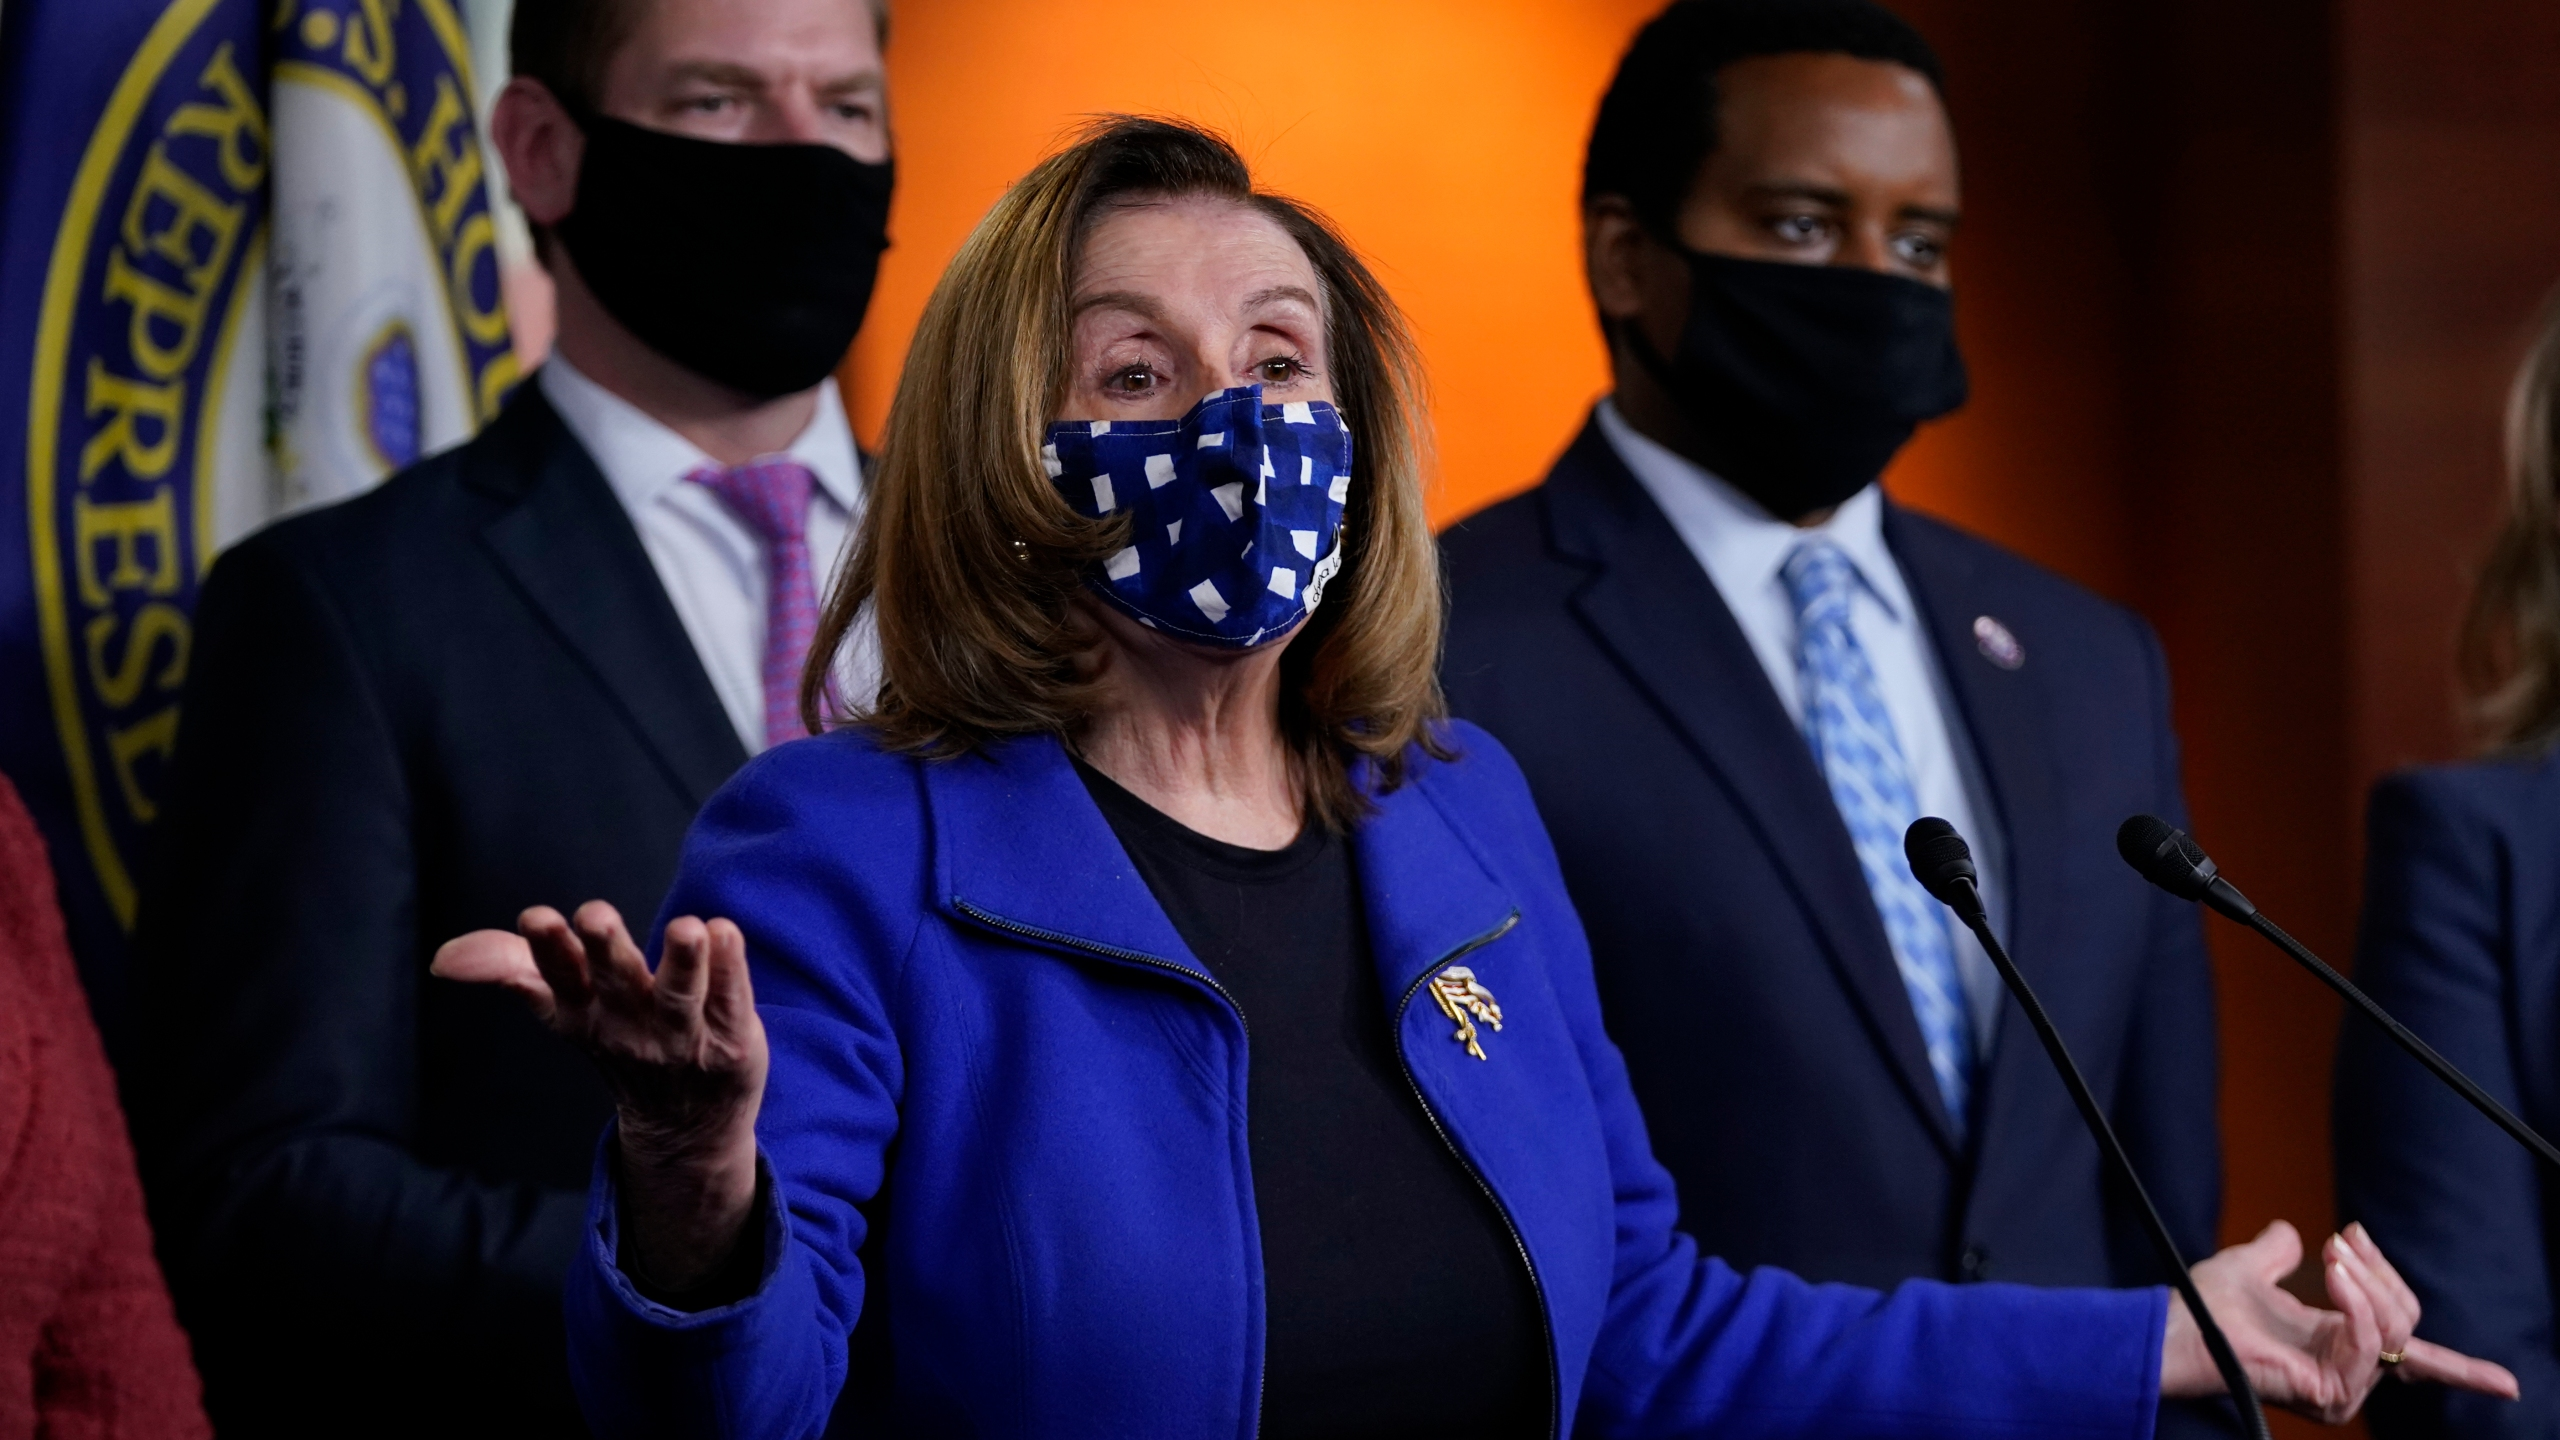 House Speaker Nancy Pelosi of Calif., with impeachment managers Rep. Eric Swalwell, D-Calif., and Rep. Joe Neguse, D-Colo., speaks to members of the media during a news conference on Capitol Hill in Washington, after the U.S. Senate voted not guilty, to acquit former President Donald Trump of inciting riot at U.S. Capitol, ending impeachment trial, Saturday, Feb. 13, 2021. (AP Photo/Manuel Balce Ceneta)